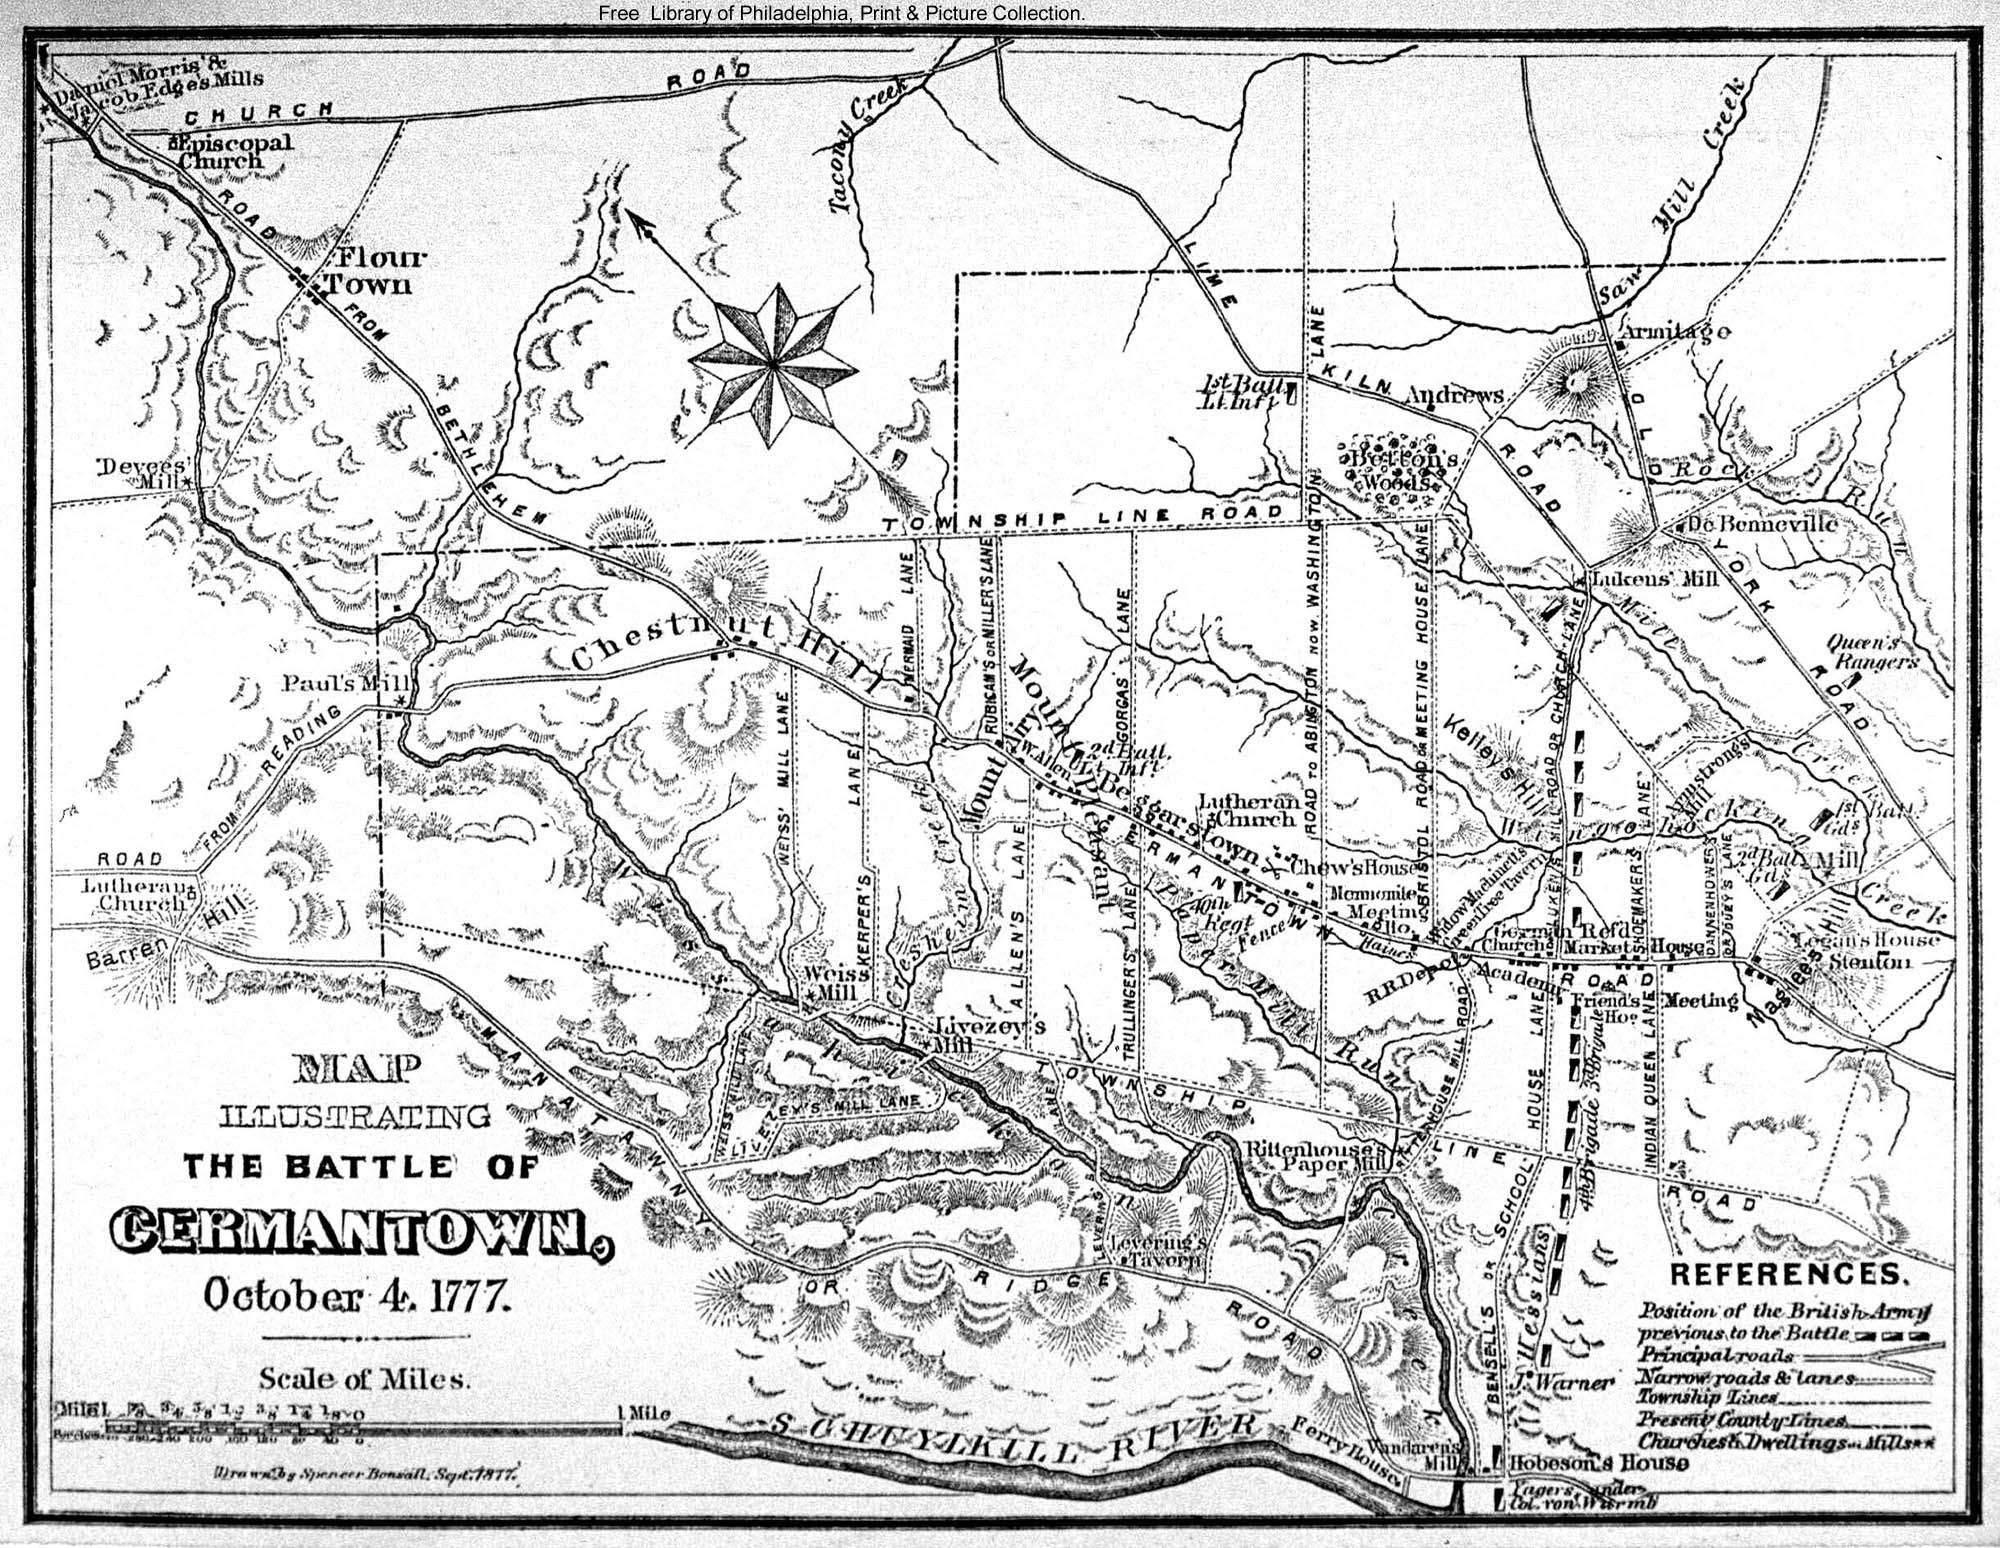 Map illustrating the Battle of Germantown 1777 drawn by Spencer